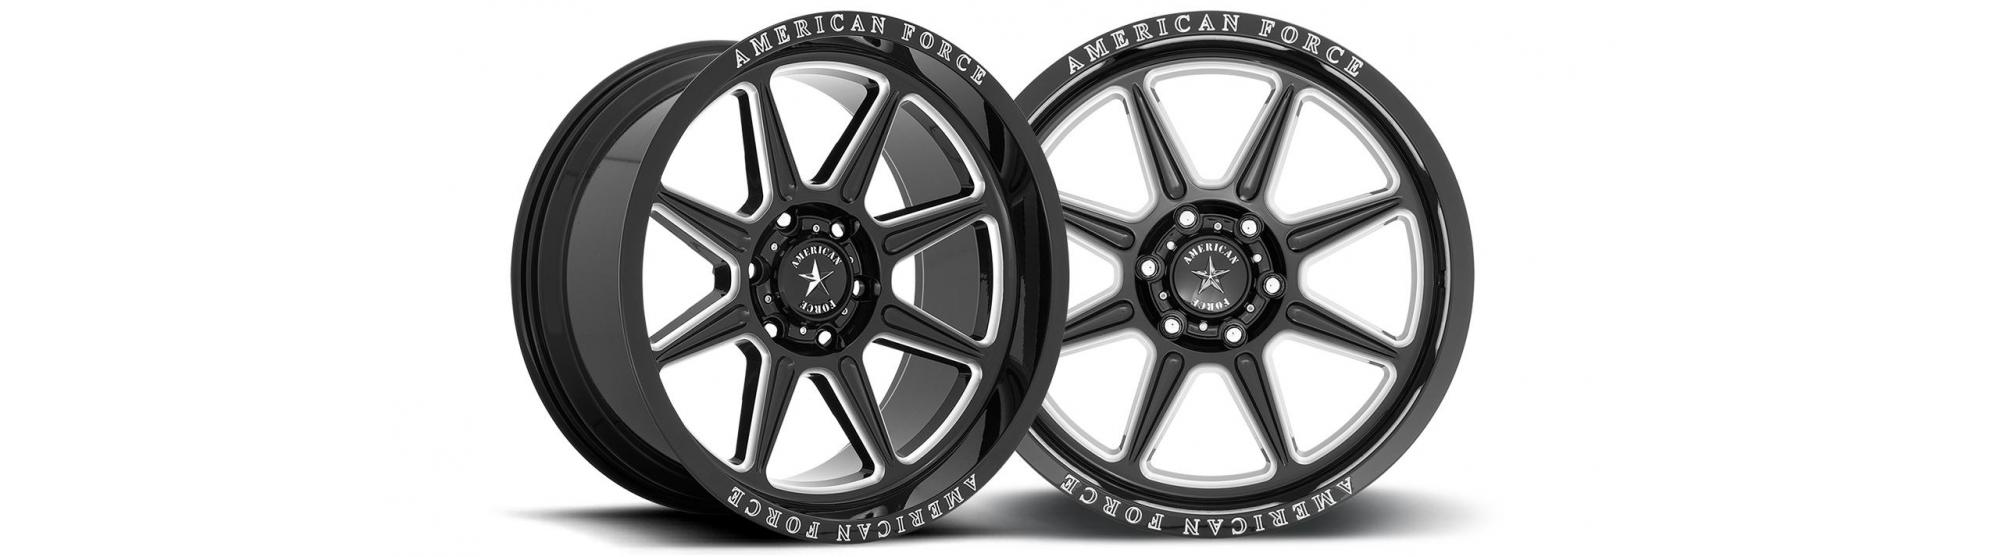 The All New Force Form AC002 Trail from American Force Wheels